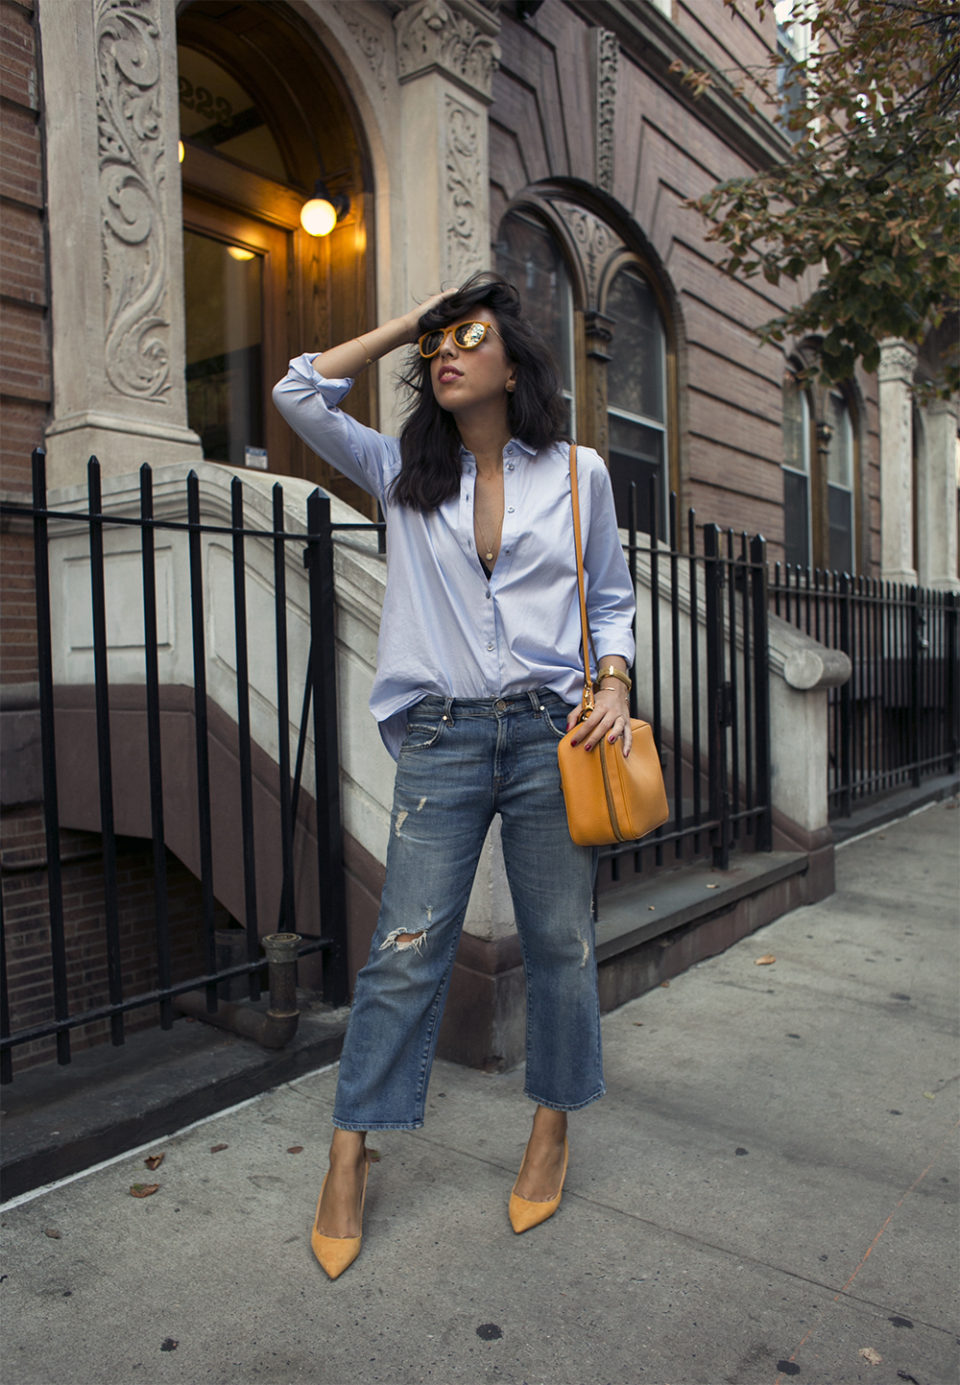 sania-claus-demina-new-york-outfit-east-village-rodebjer-bikbok-zara-mark-cross-rayban-zanita-whittington_3